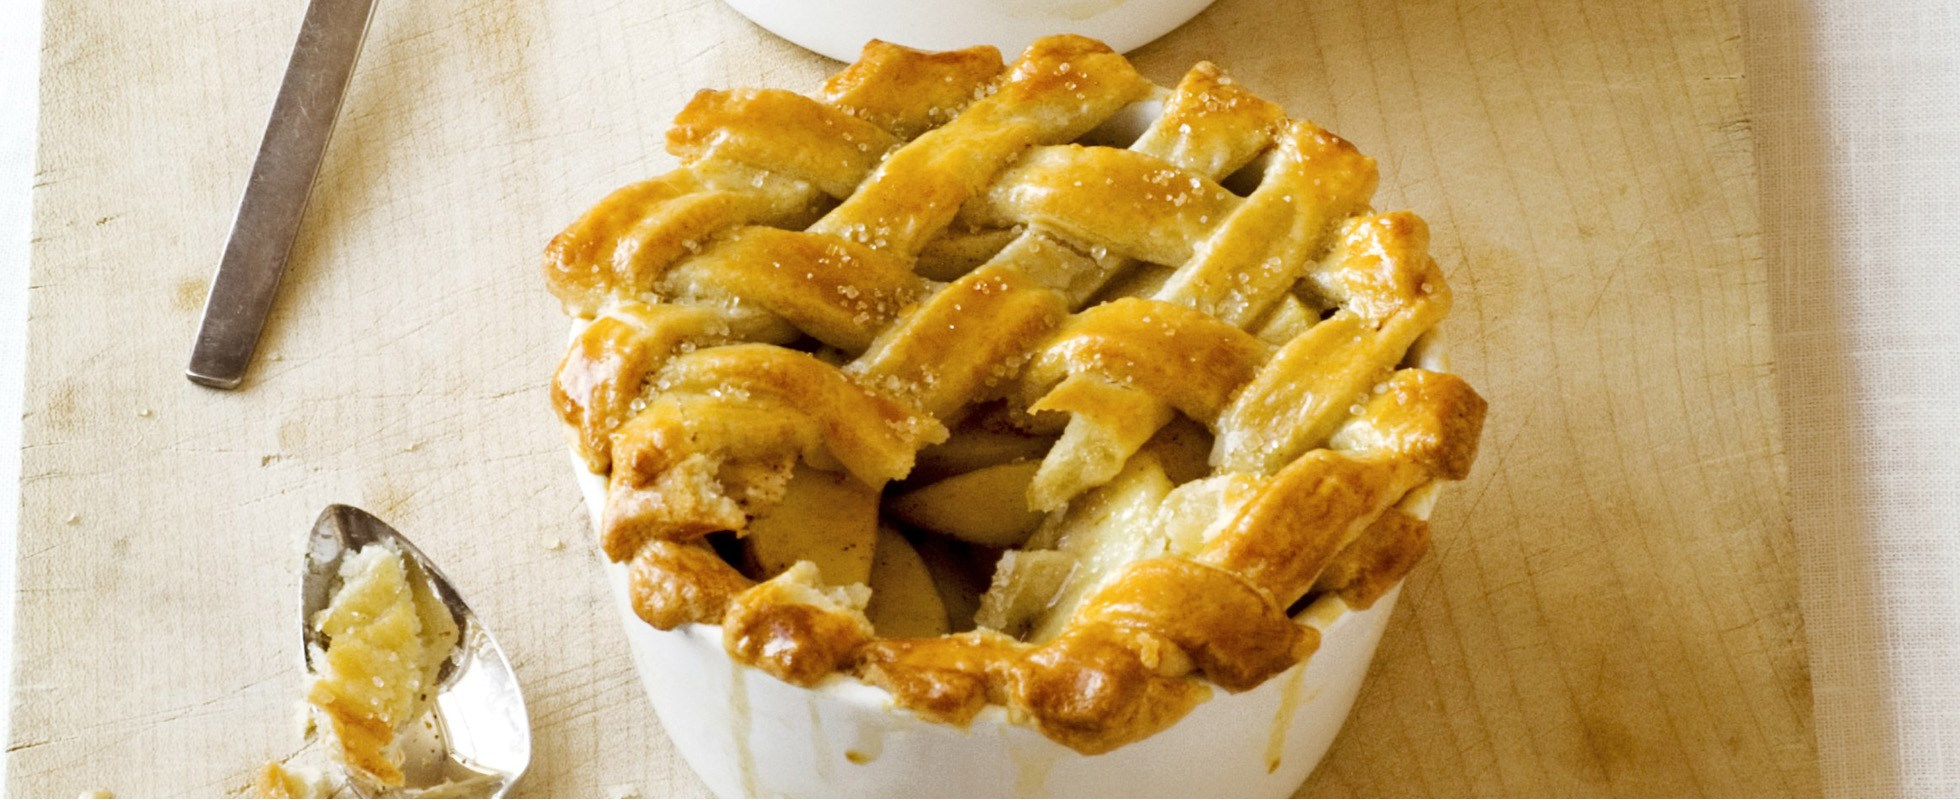 Spiced sugar crust apple pies